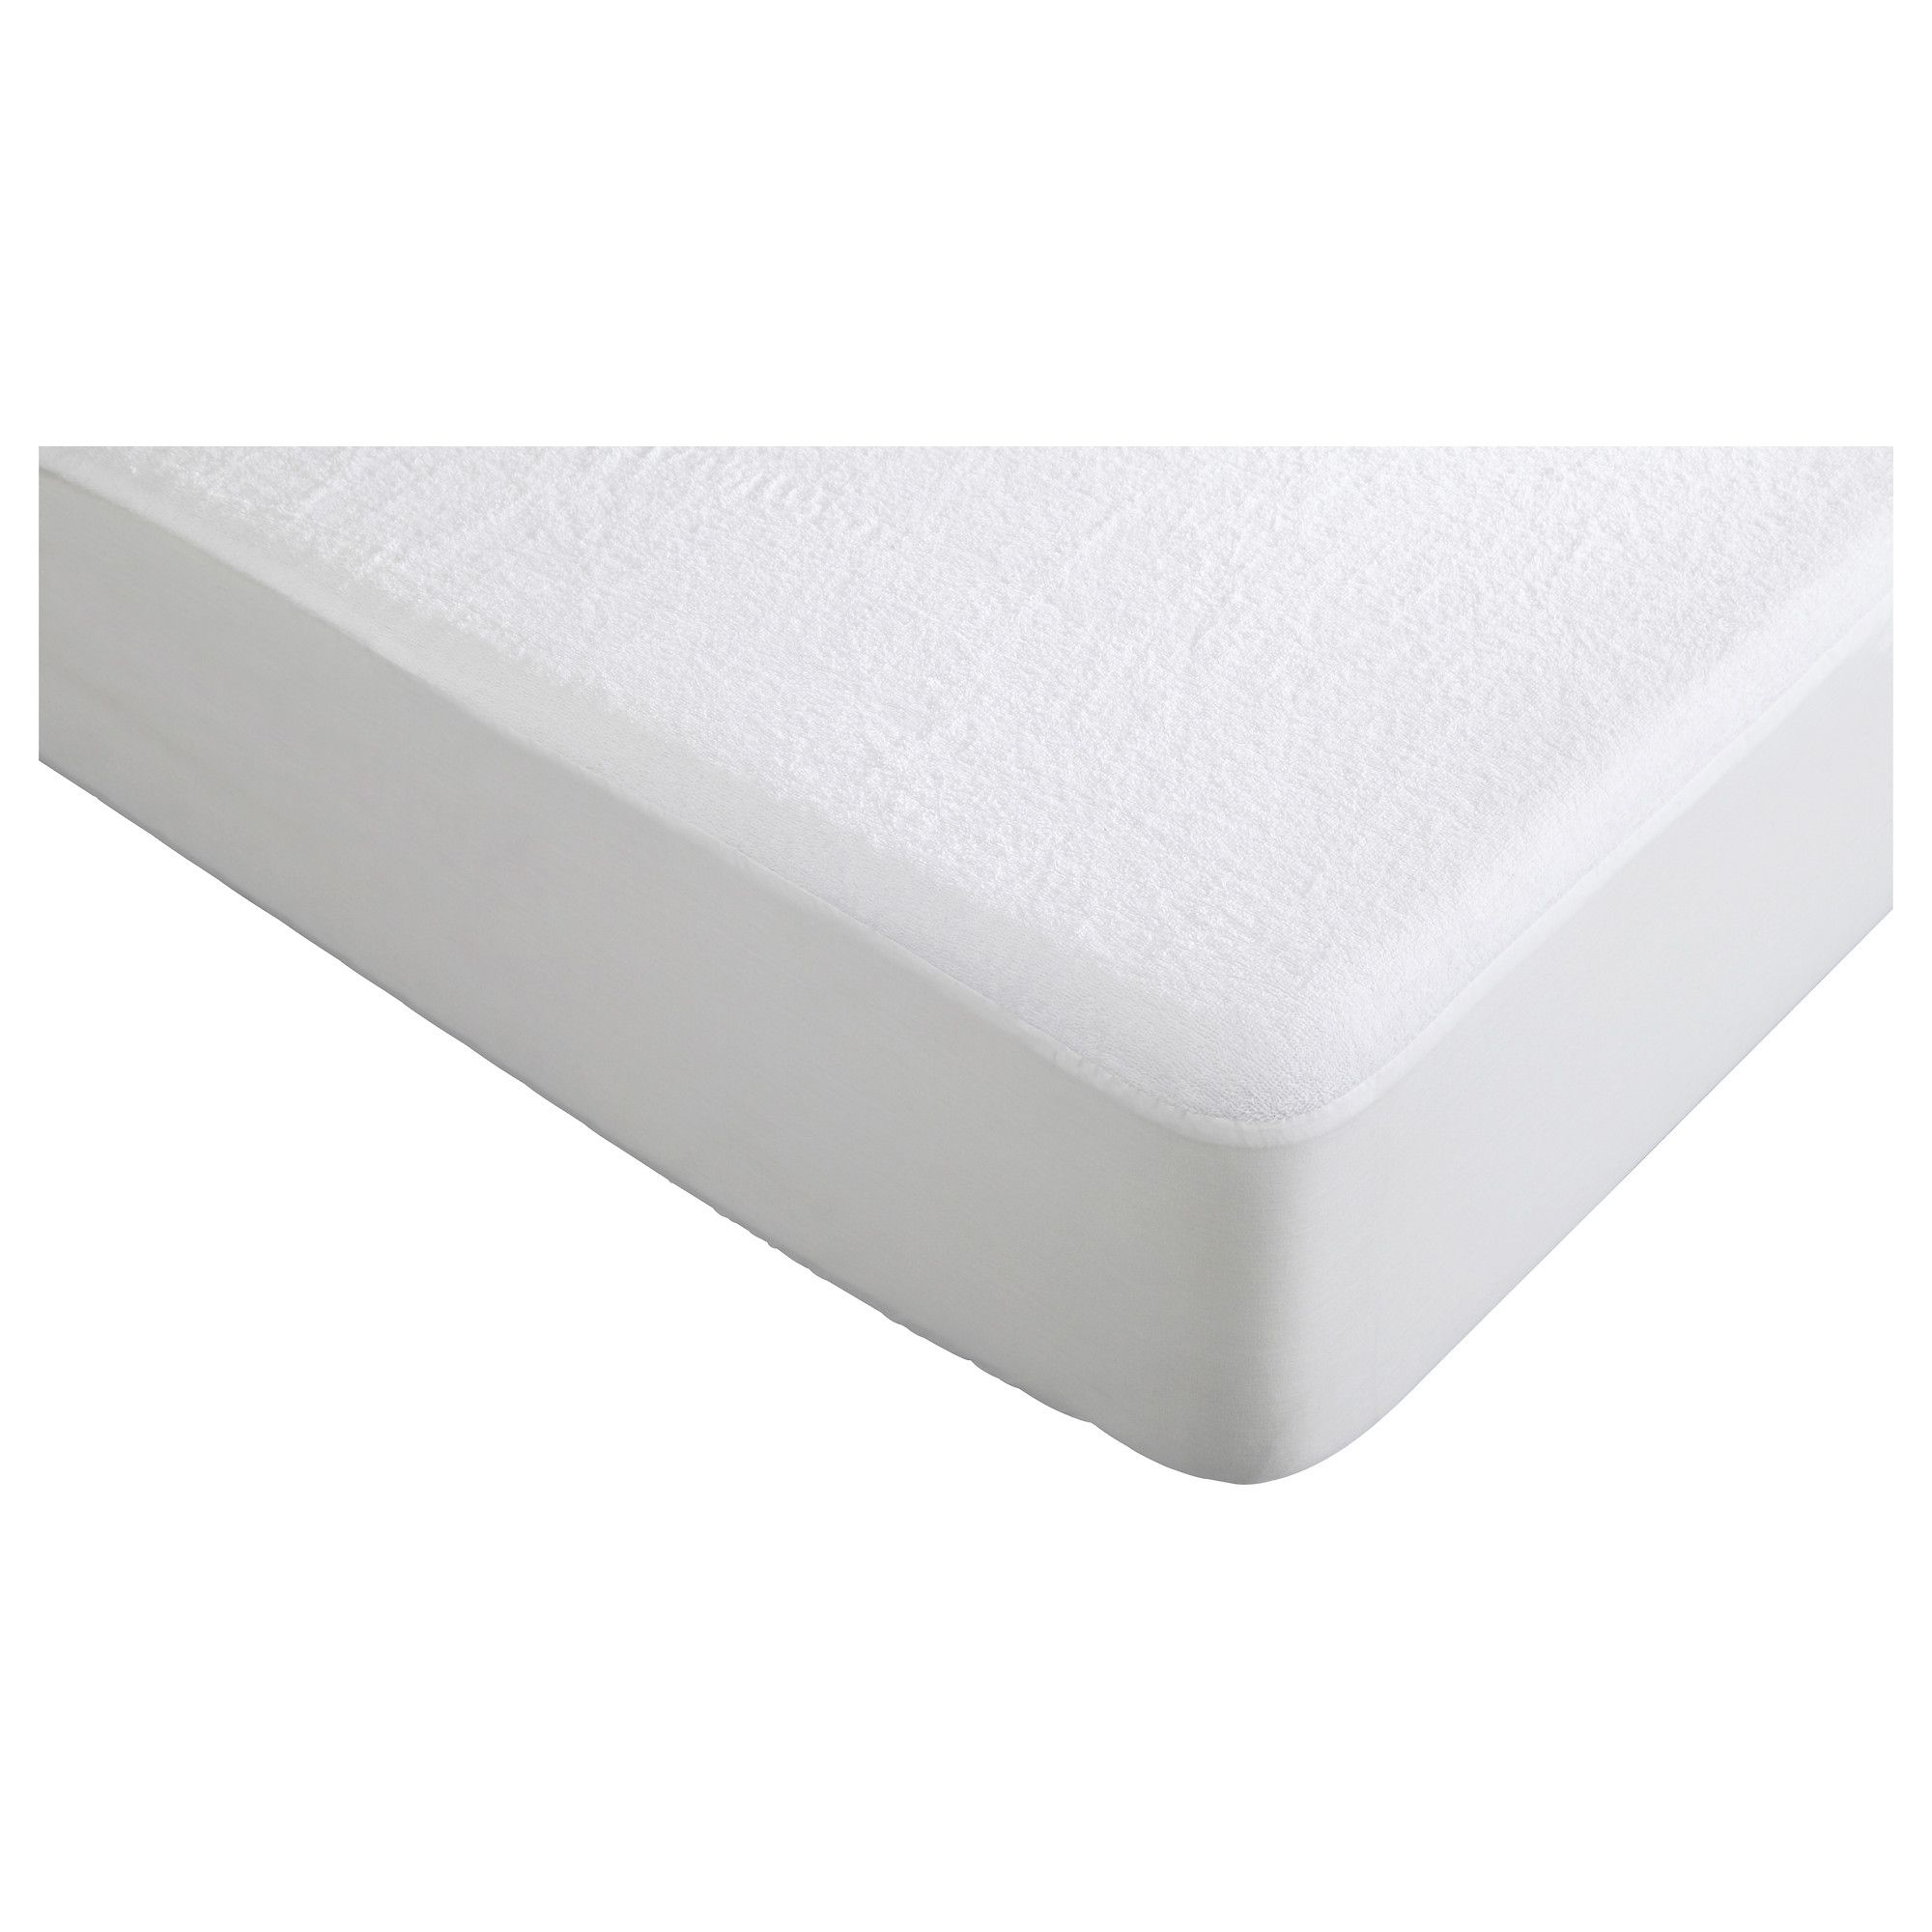 Ikea Mattress Protector Queen Size